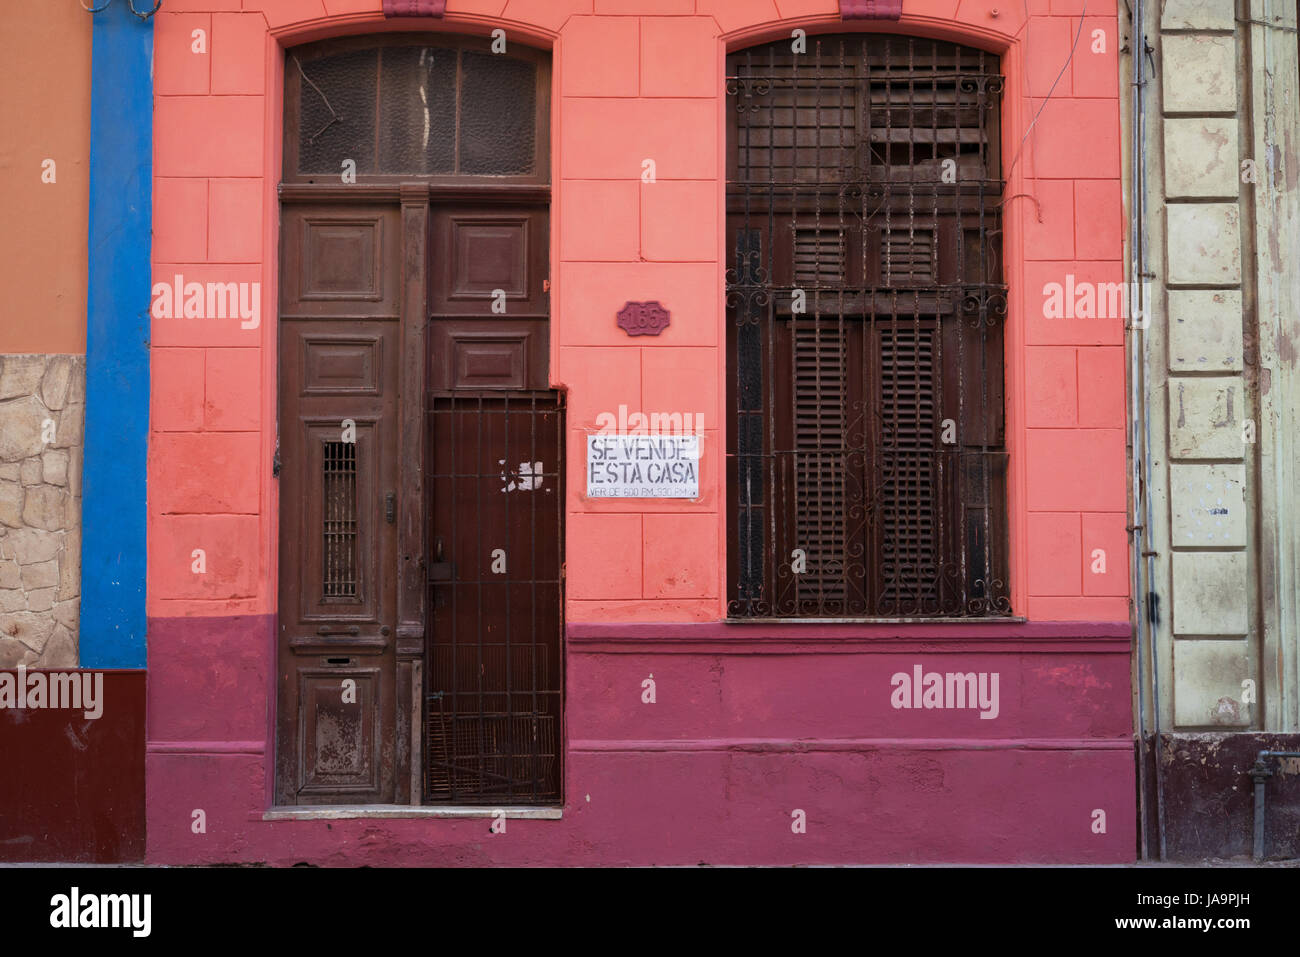 House on sale in Havana, Cuba - Stock Image